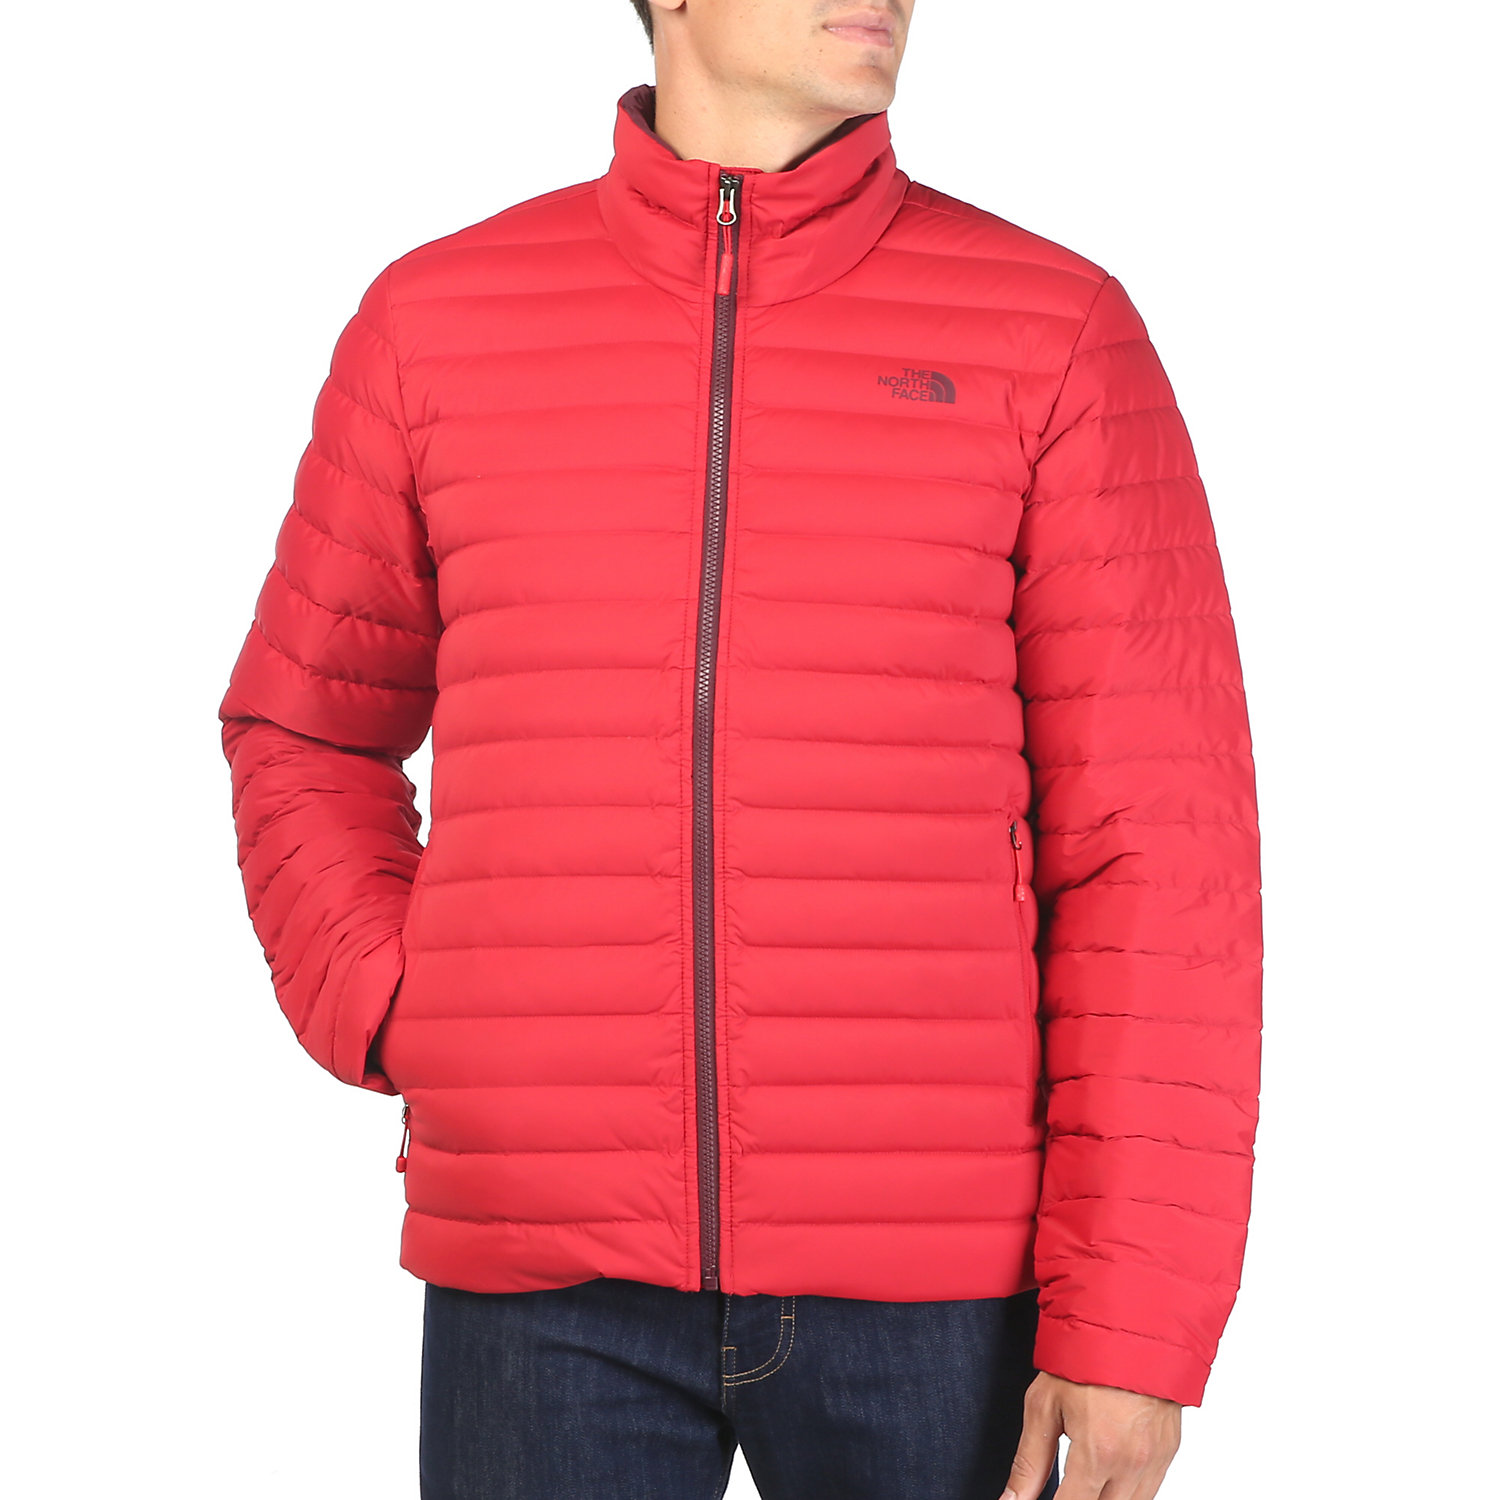 The North Face Men s Stretch Down Jacket - Moosejaw 774a74ccf